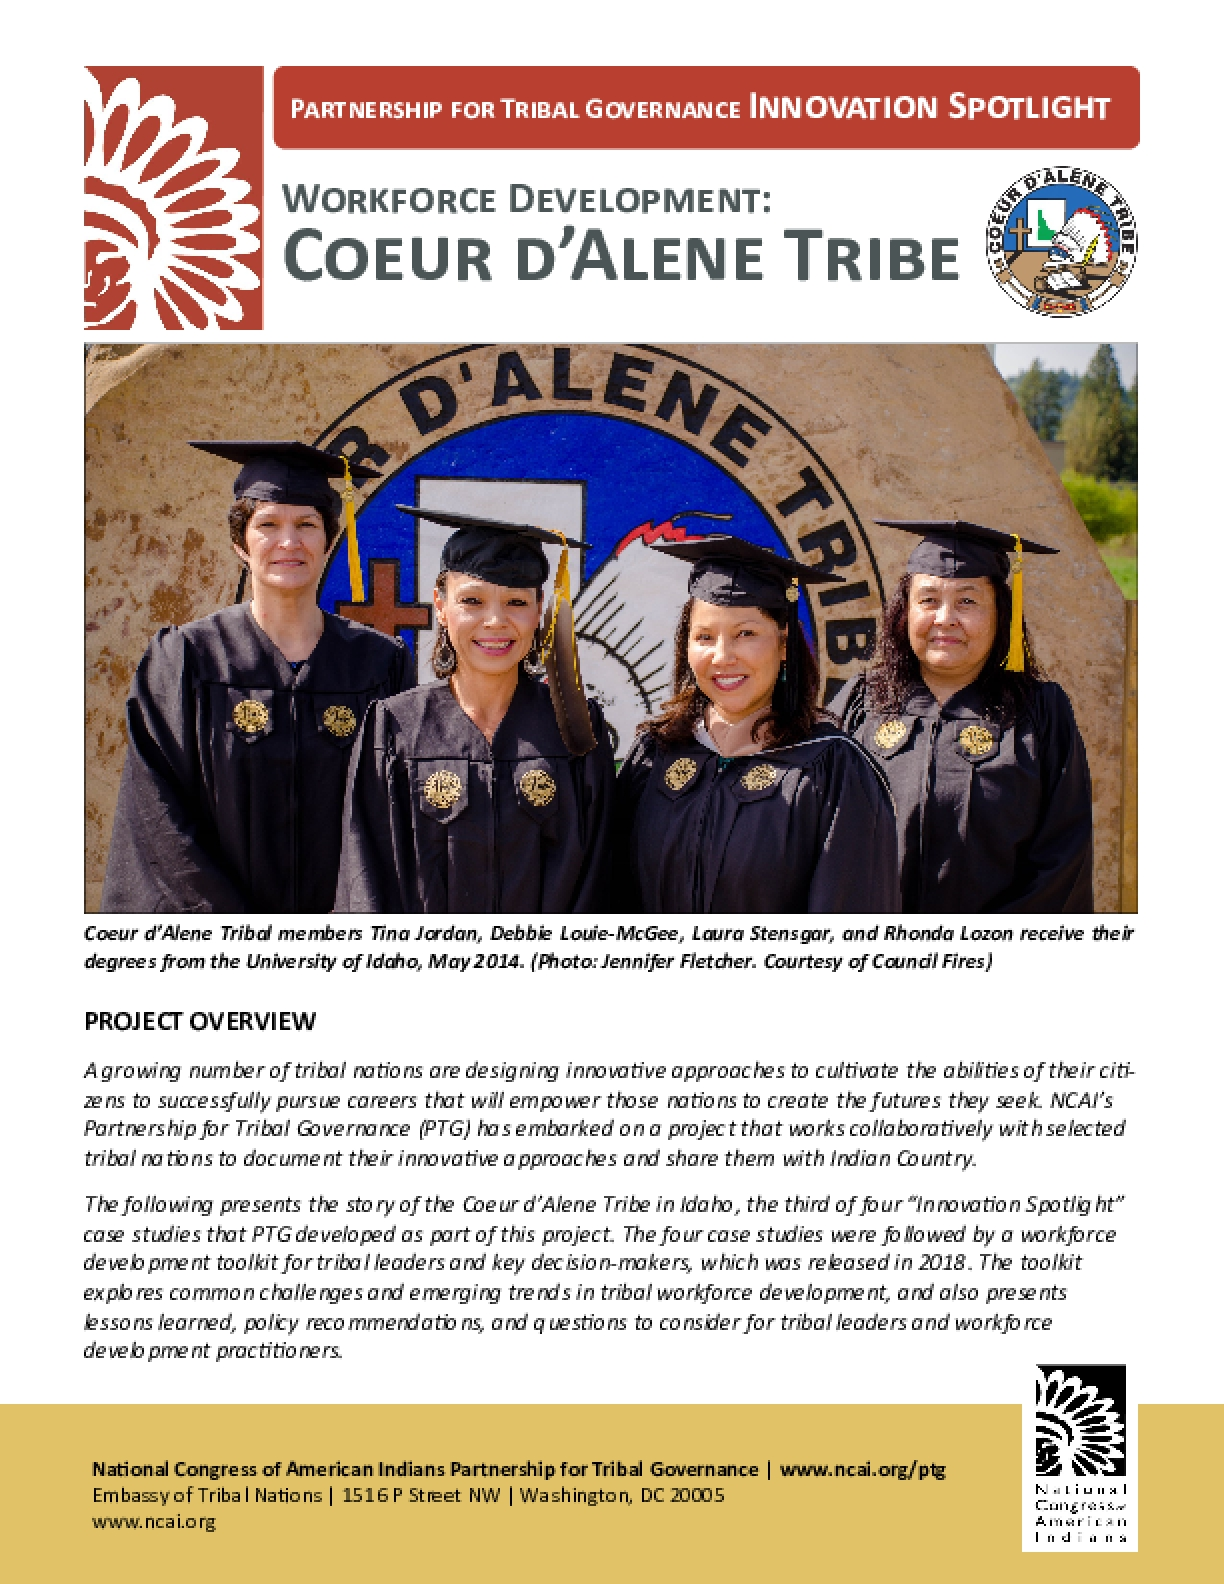 Workforce Development: Coeur d'Alene Tribe